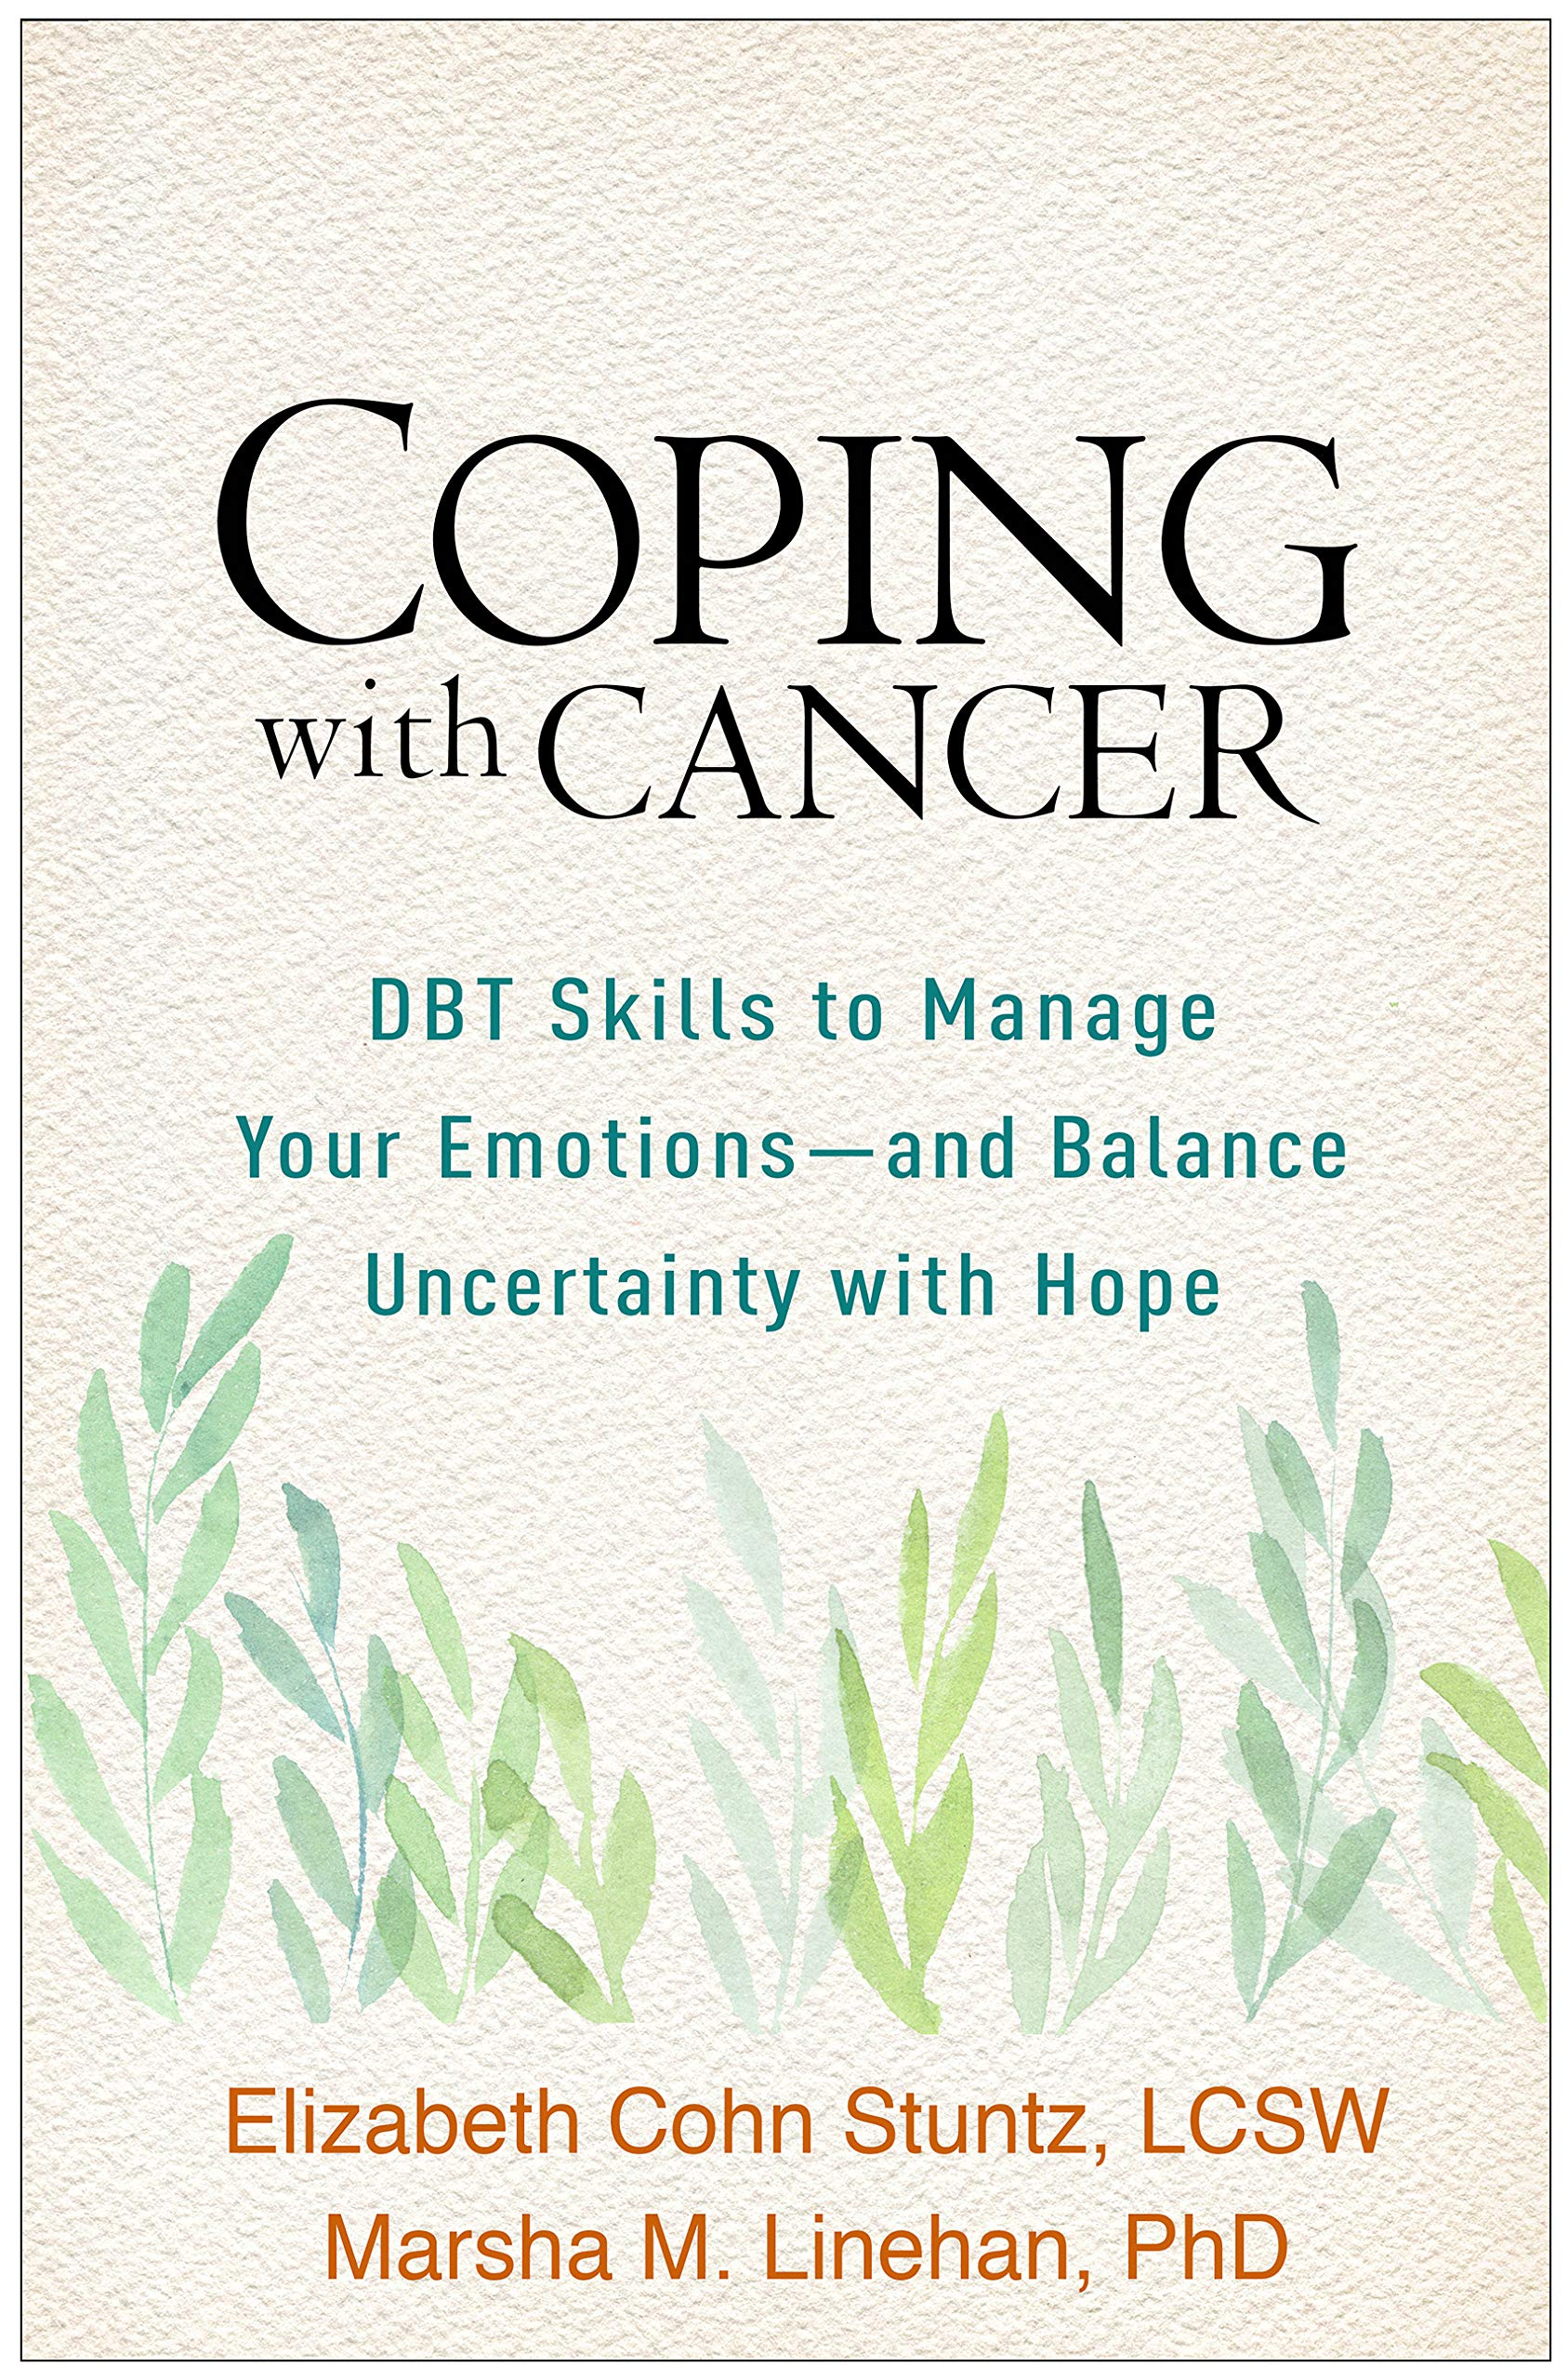 Coping with Cancer eBook cover